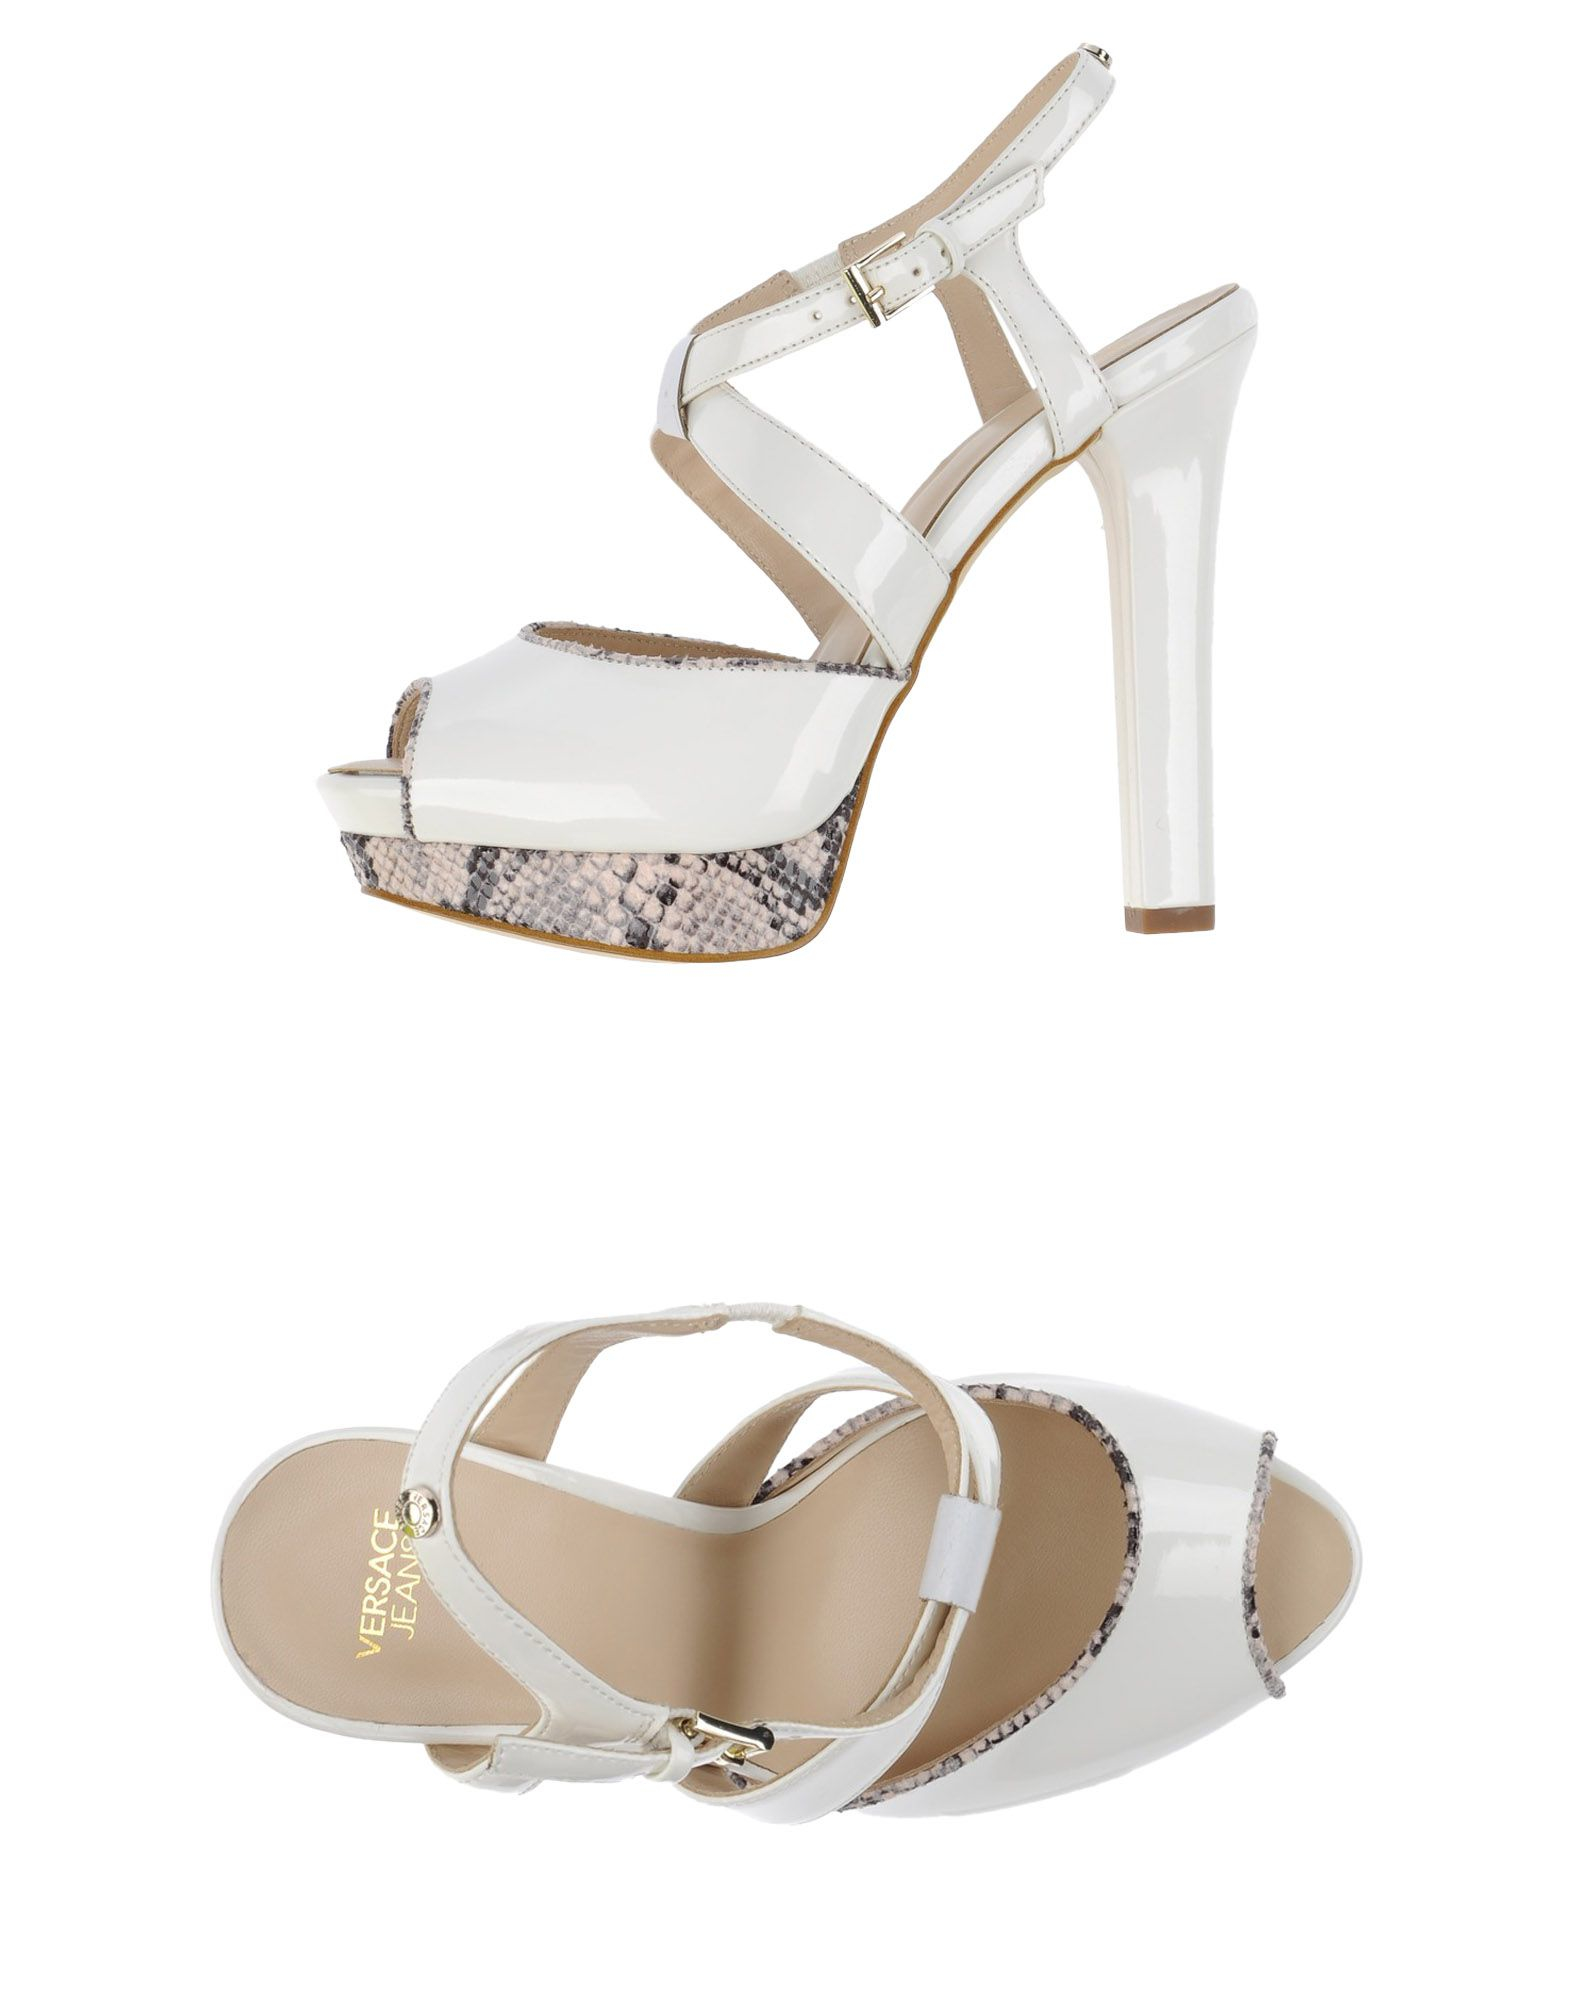 Lyst - Versace Jeans Sandals in White